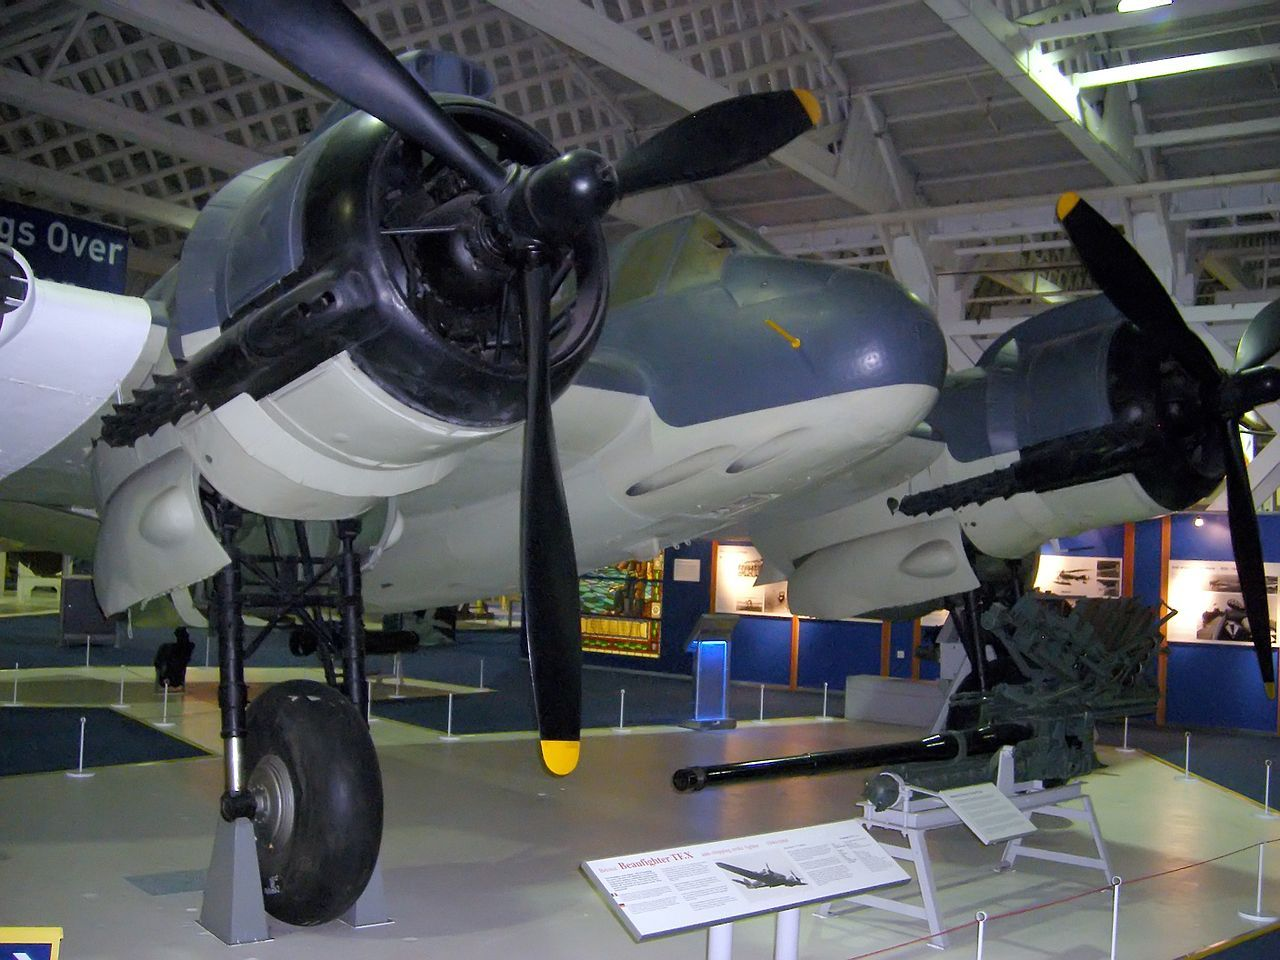 Beaufighter TF X - Bristol Beaufighter - Wikipedia, the free encyclopedia